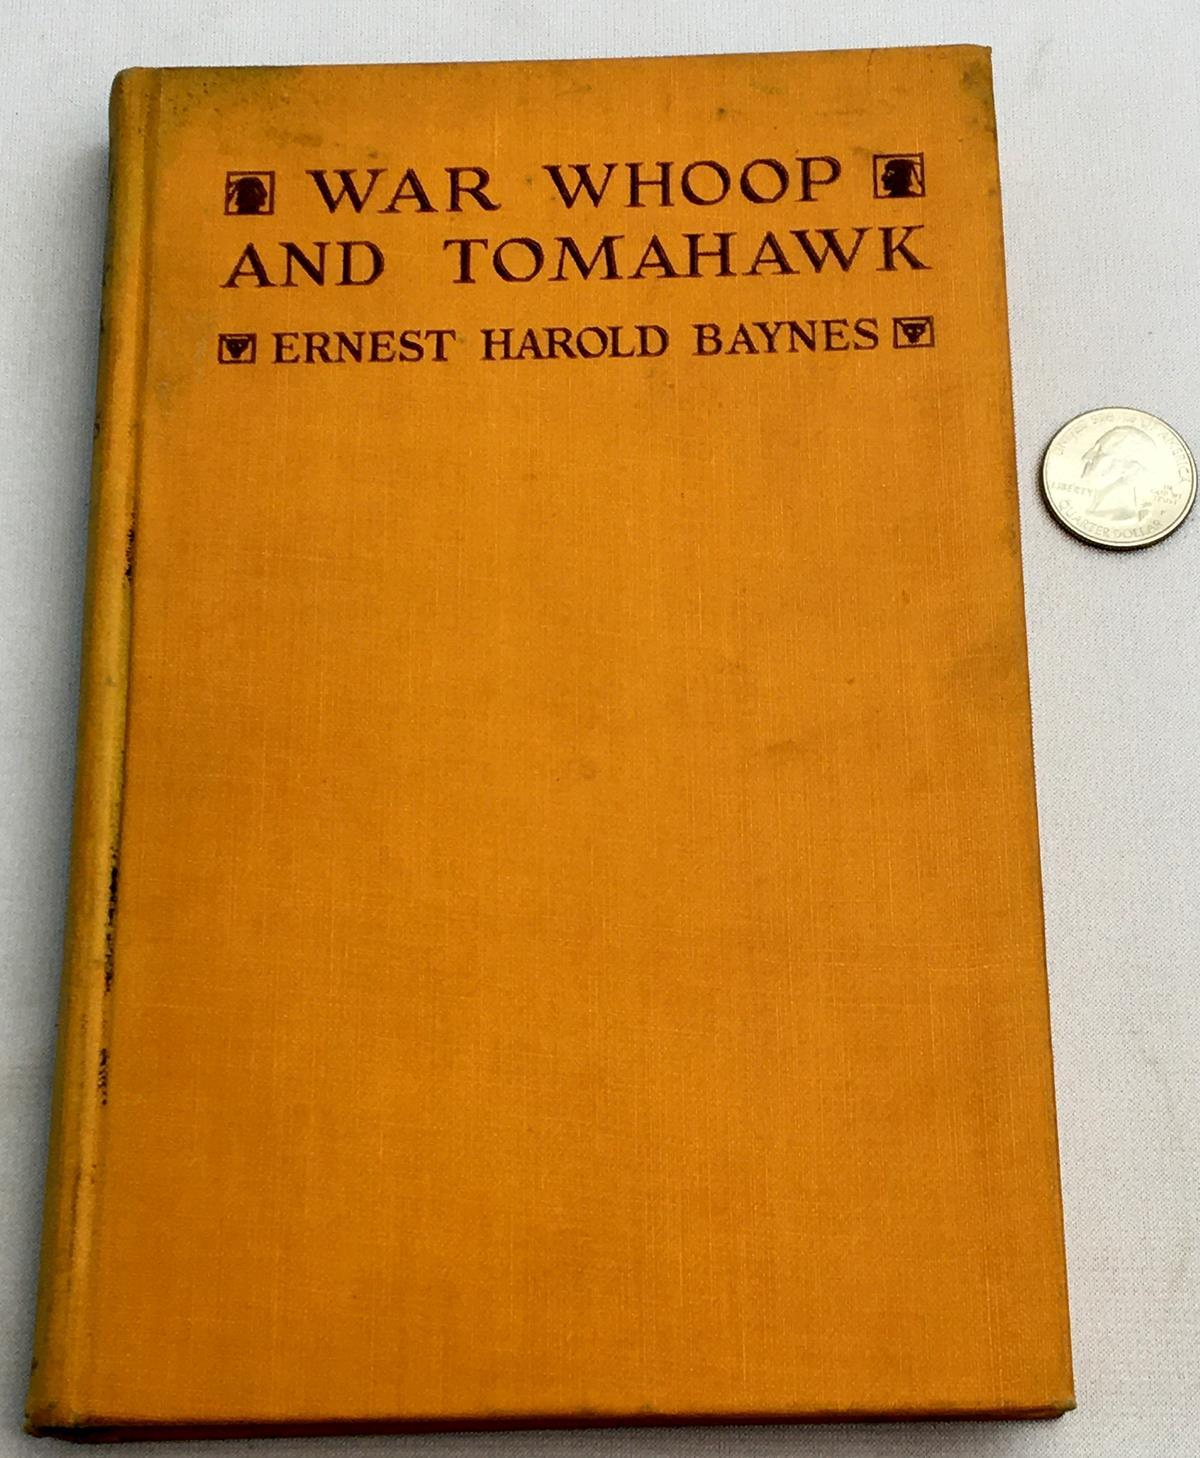 1929 War Whoop and Tomahawk: The Story of Two Buffalo Calves by Ernest Harold Baynes FIRST EDITION